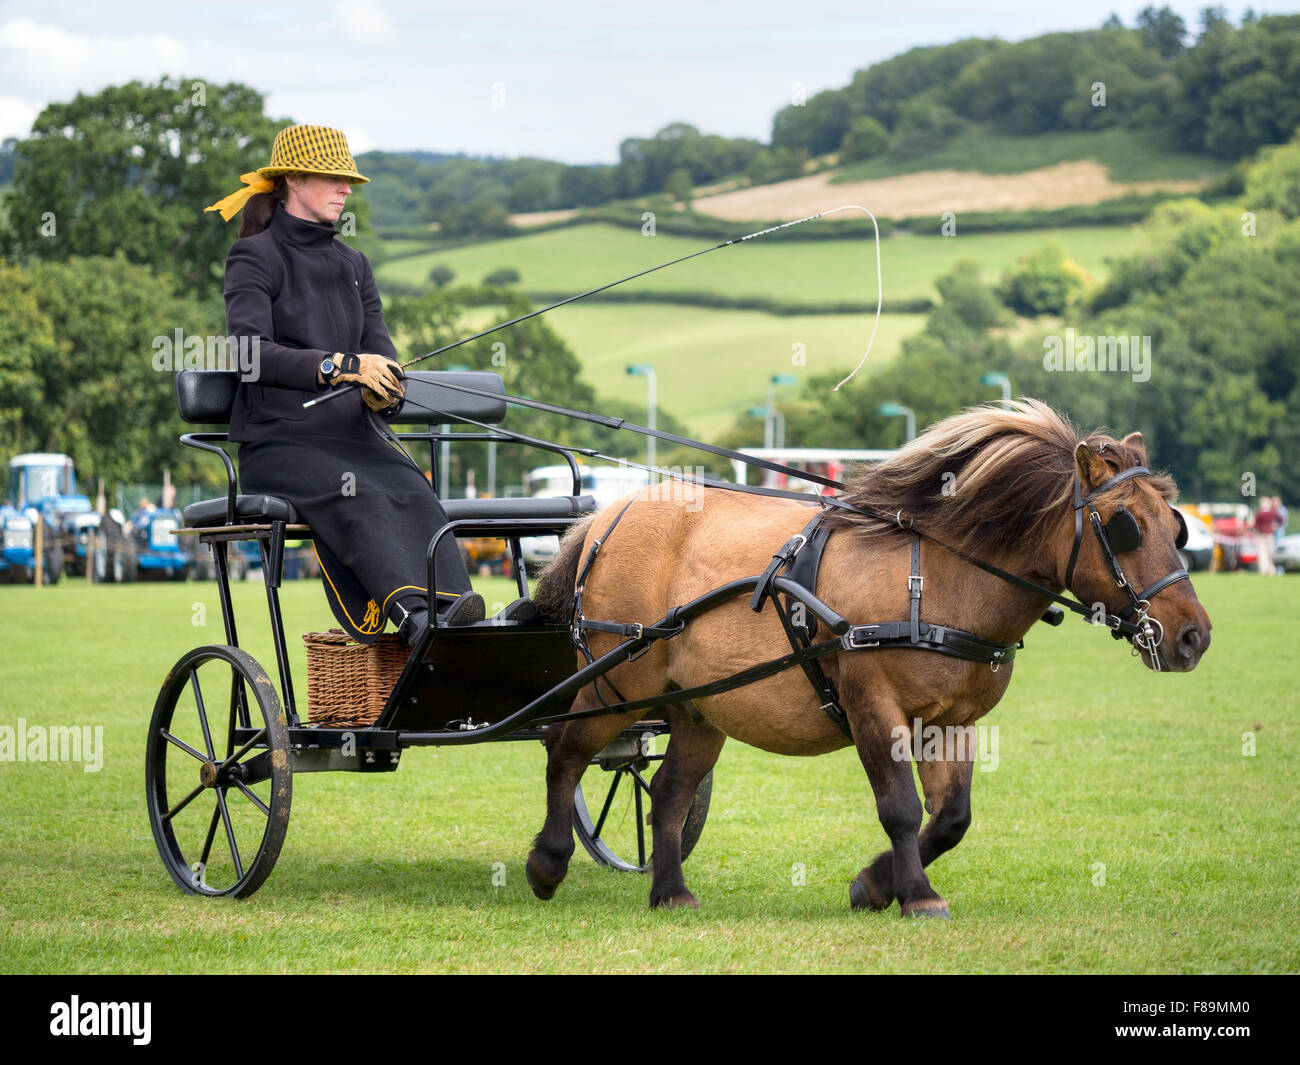 Woman with pony and trap at agricultural show - Stock Image